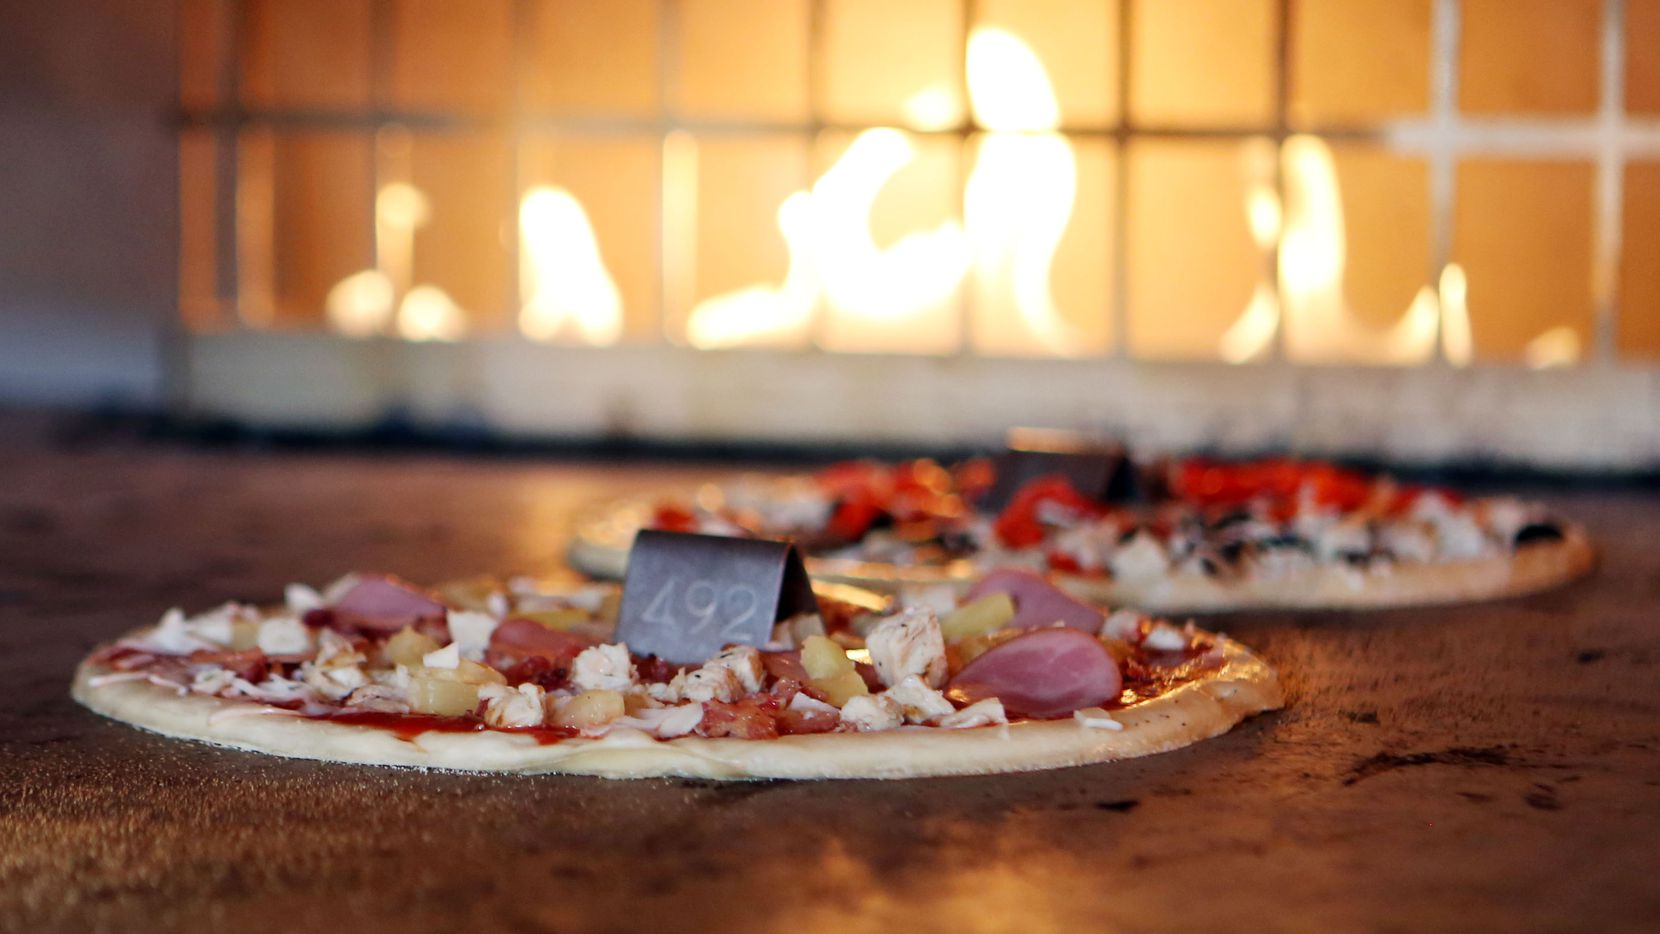 Blaze Pizza uses a hot open-flame oven to cook thin crust pizzas.